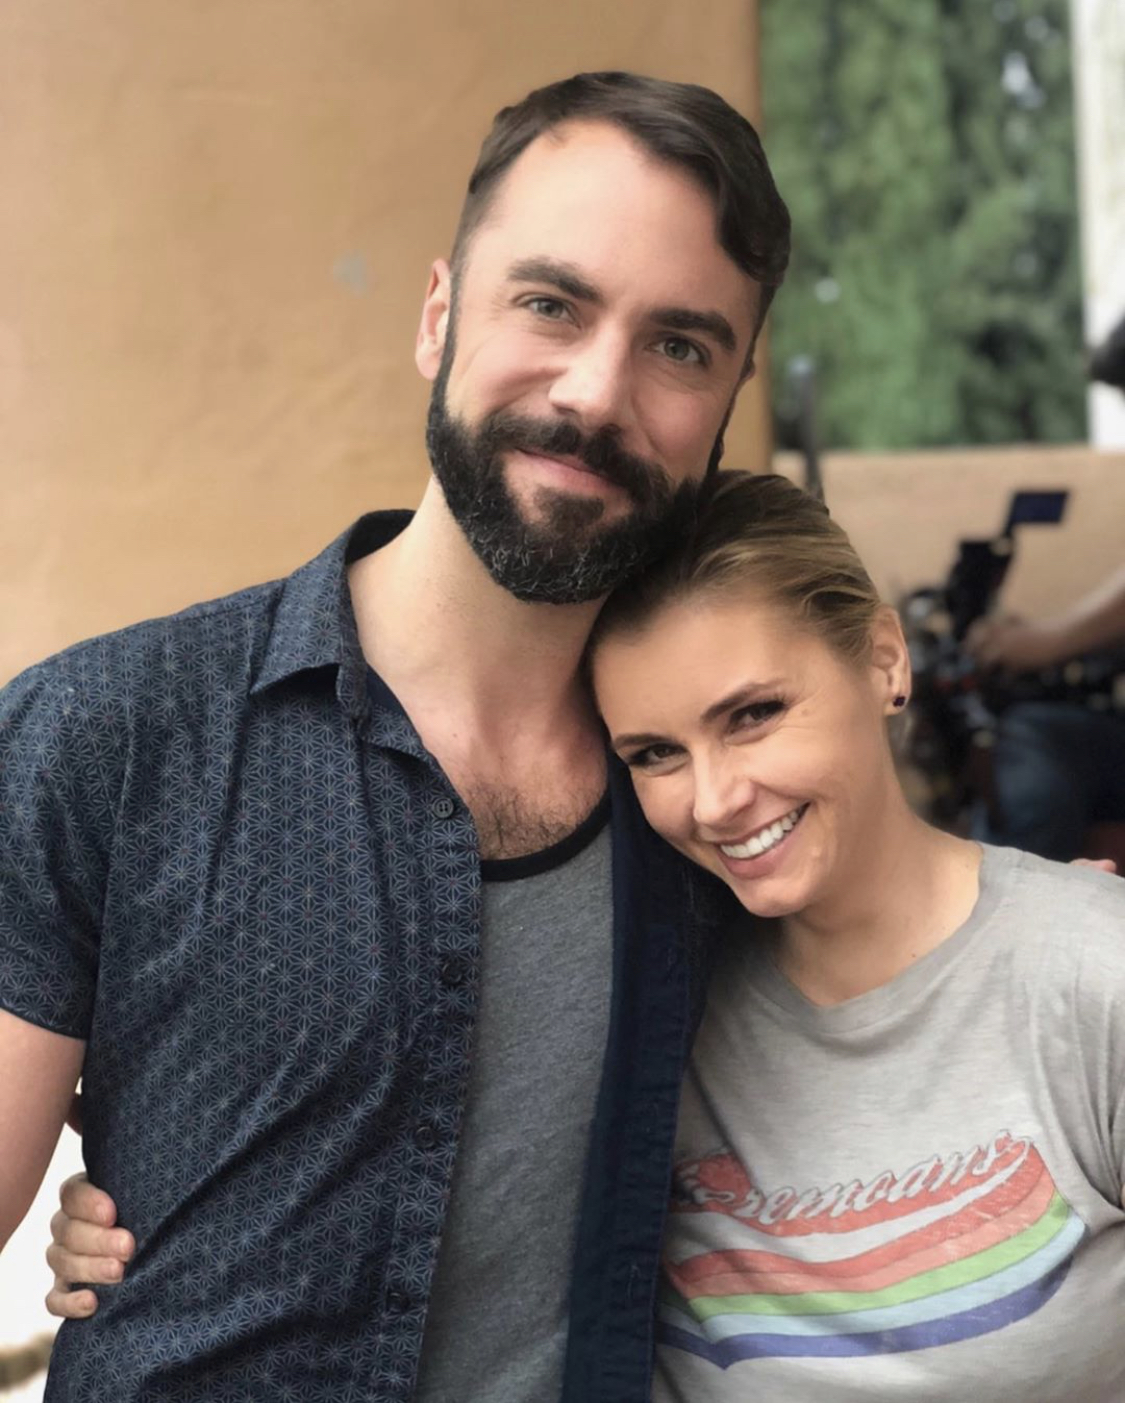 """EastSiders"" co-creator John Halbach and co-star Brianna Brown, who plays one of Halbach's on-screen girlfriends // Photo courtesy John Hallbach"